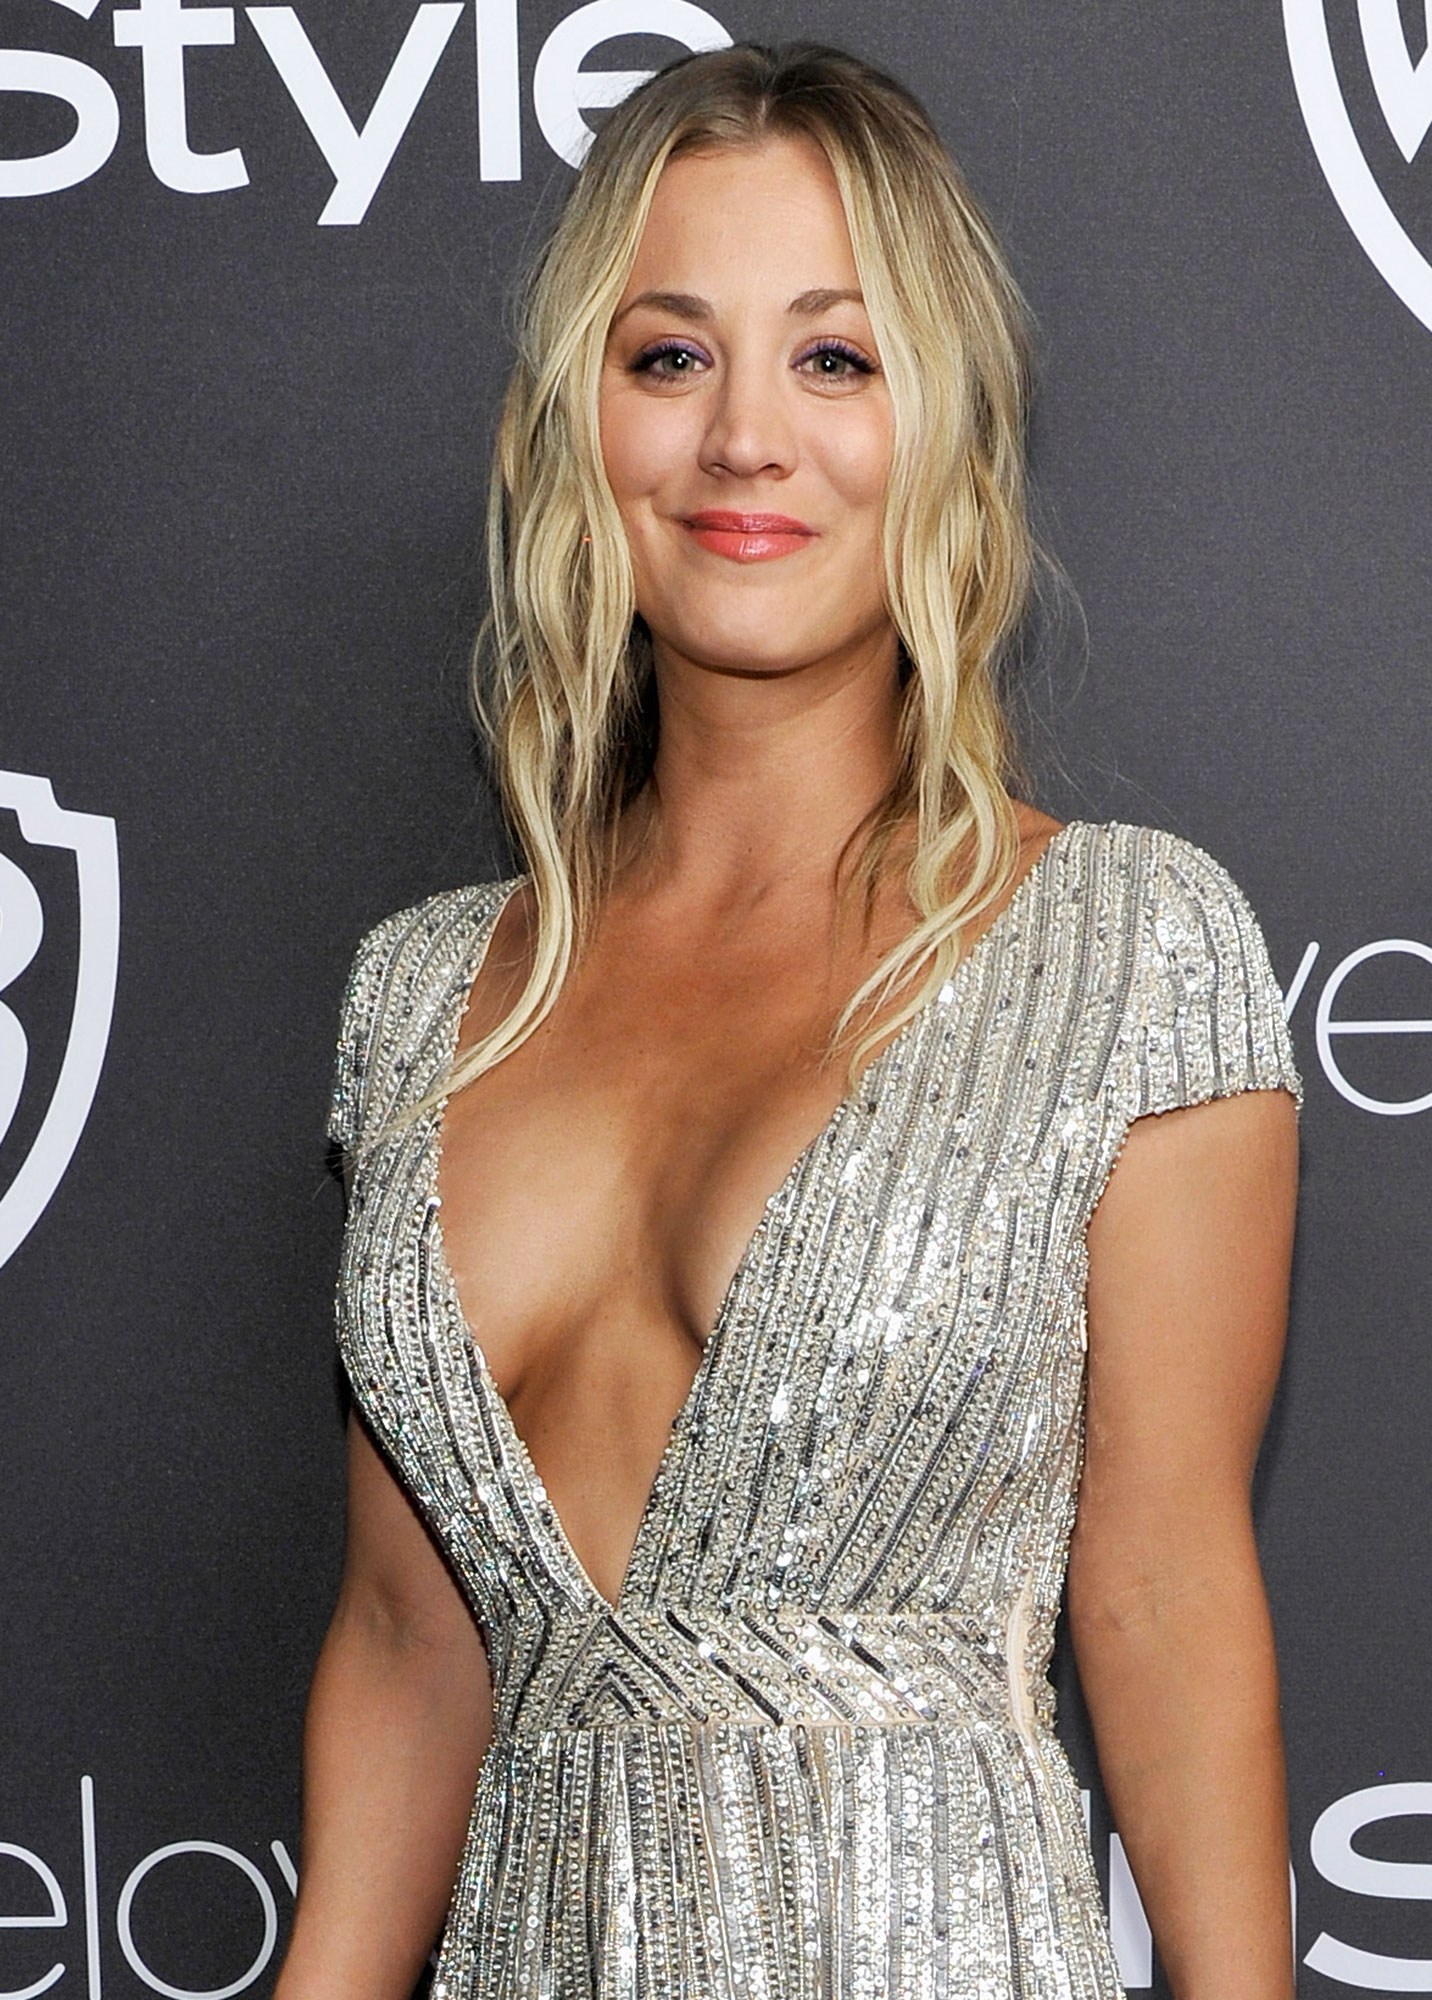 Cleavage Kaley Cuoco nudes (21 foto and video), Topless, Is a cute, Feet, butt 2015